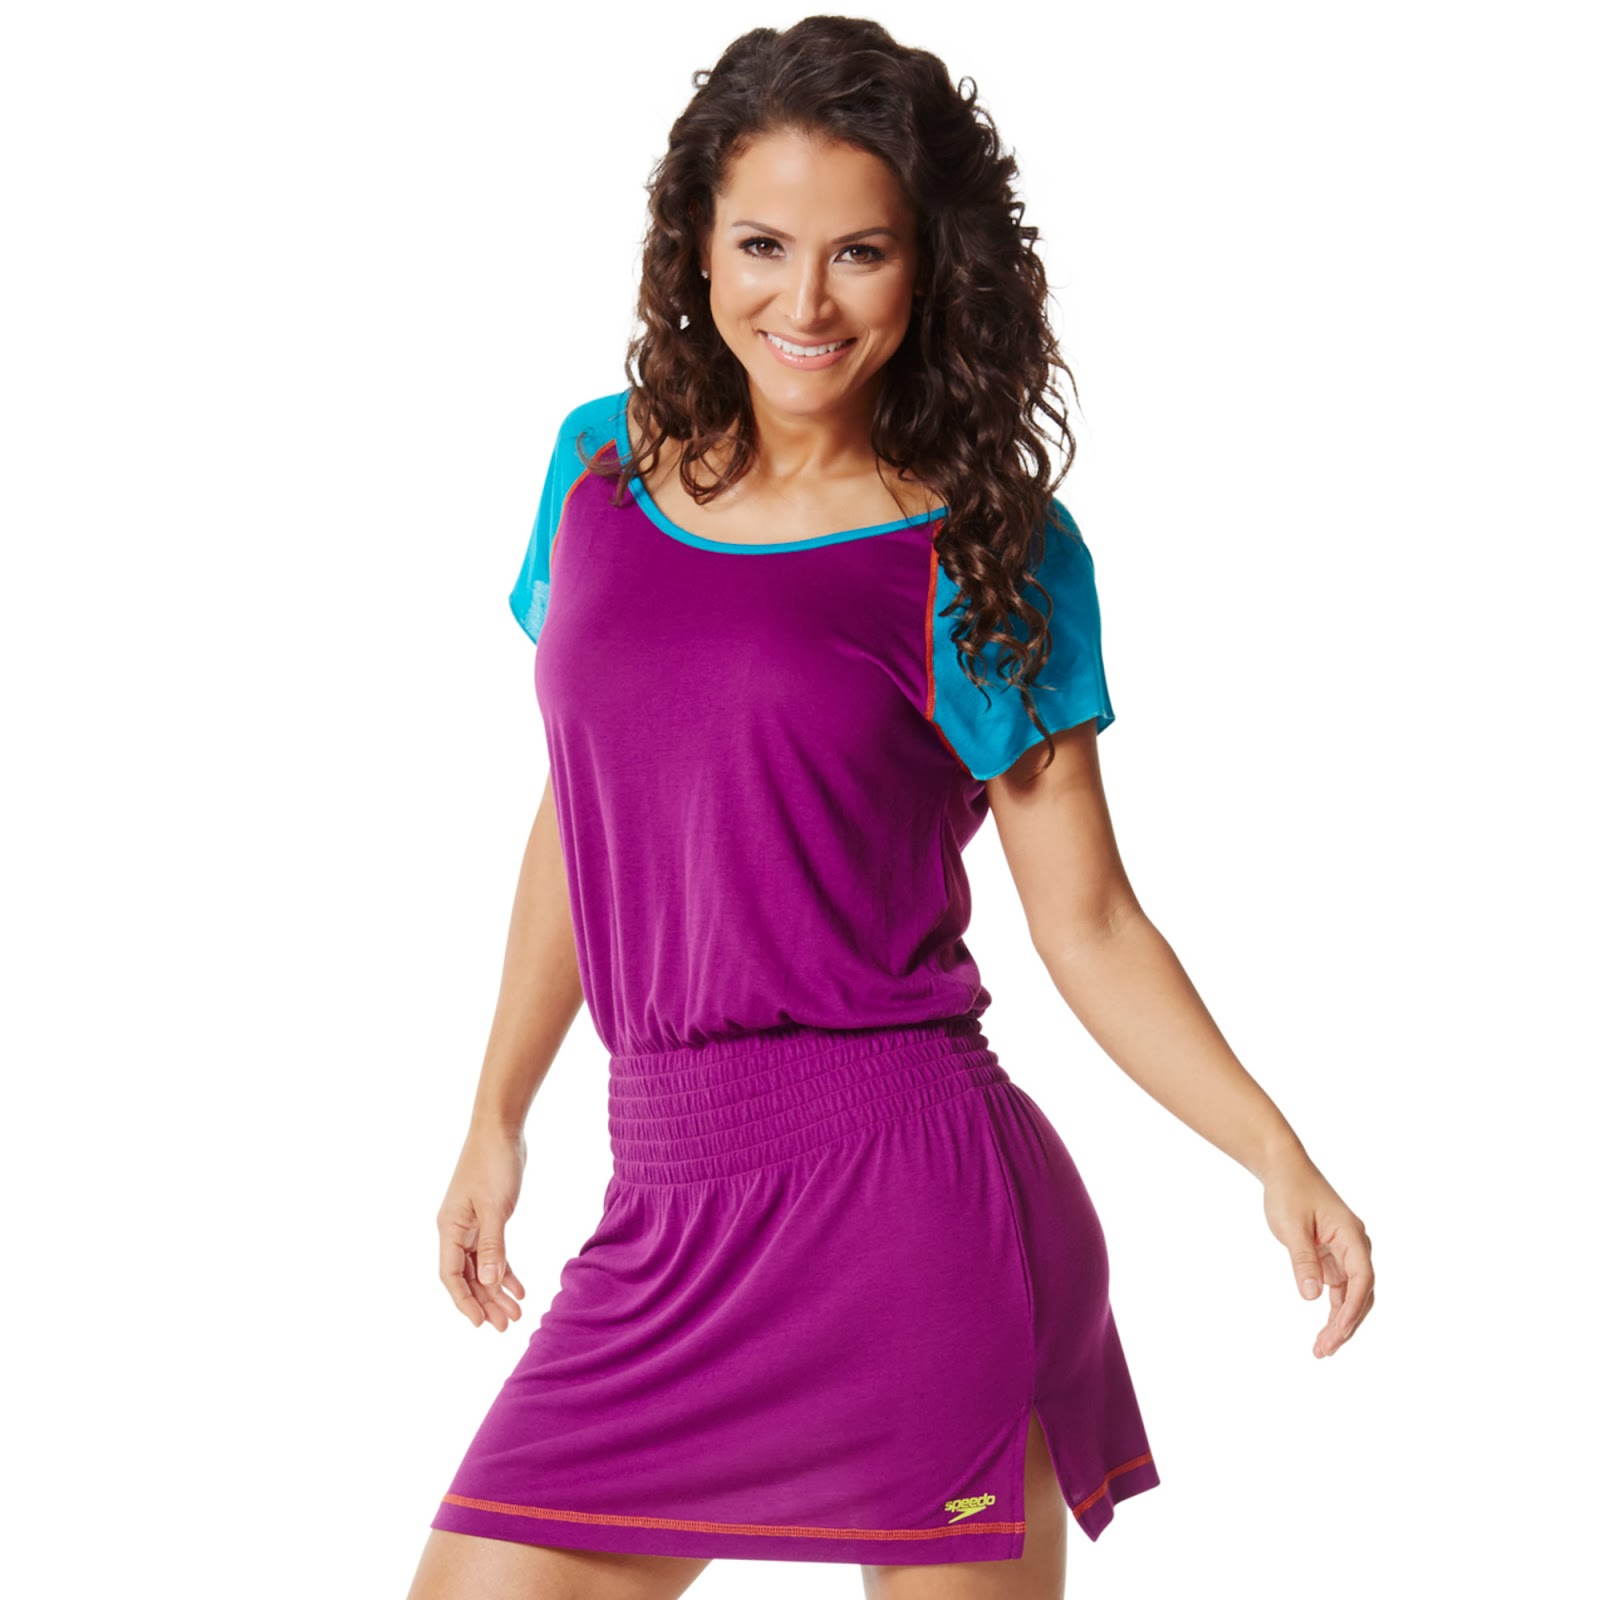 http://www.zumba.com/en-US/store-zin/US/product/rock-with-me-cover-up?color=Vivid+Violet